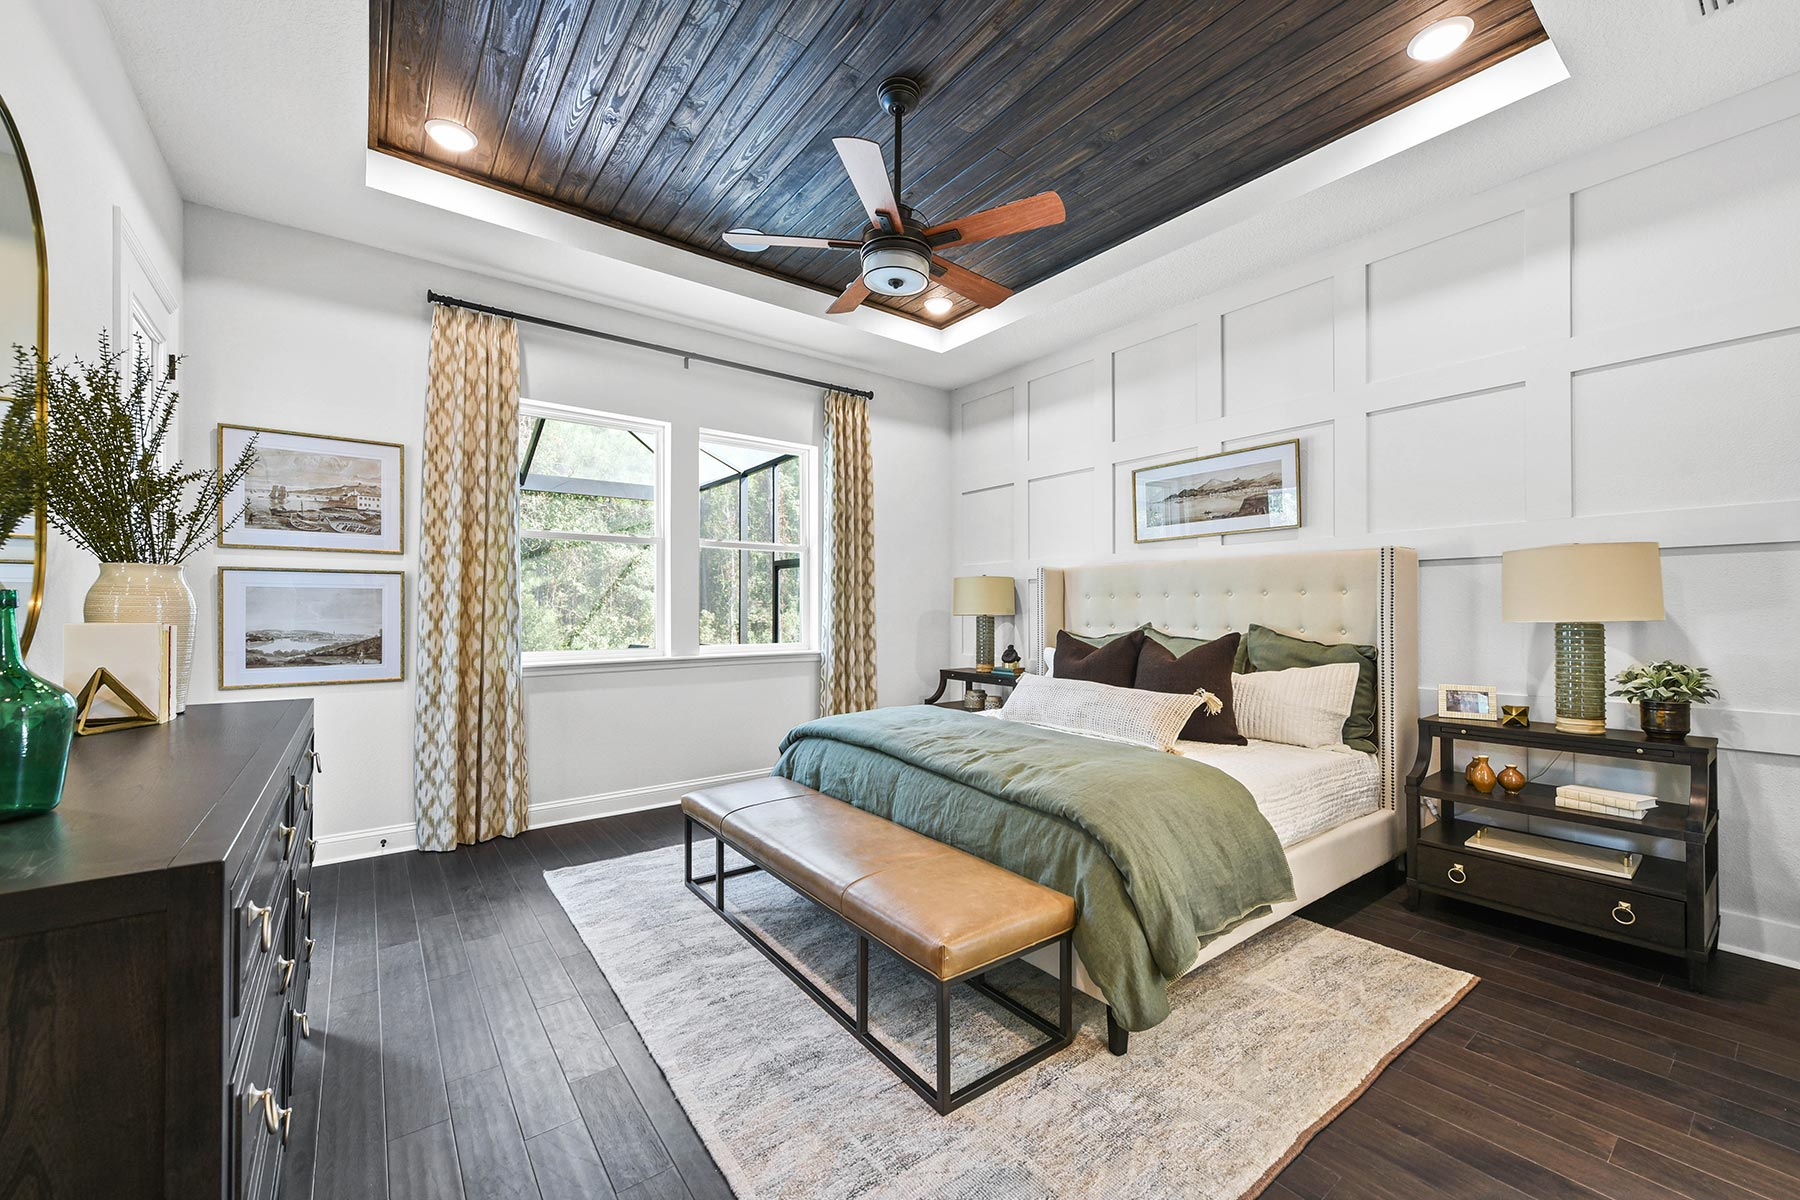 Bridge Plan Bedroom at RiverTown - WaterSong in St. Johns Florida by Mattamy Homes